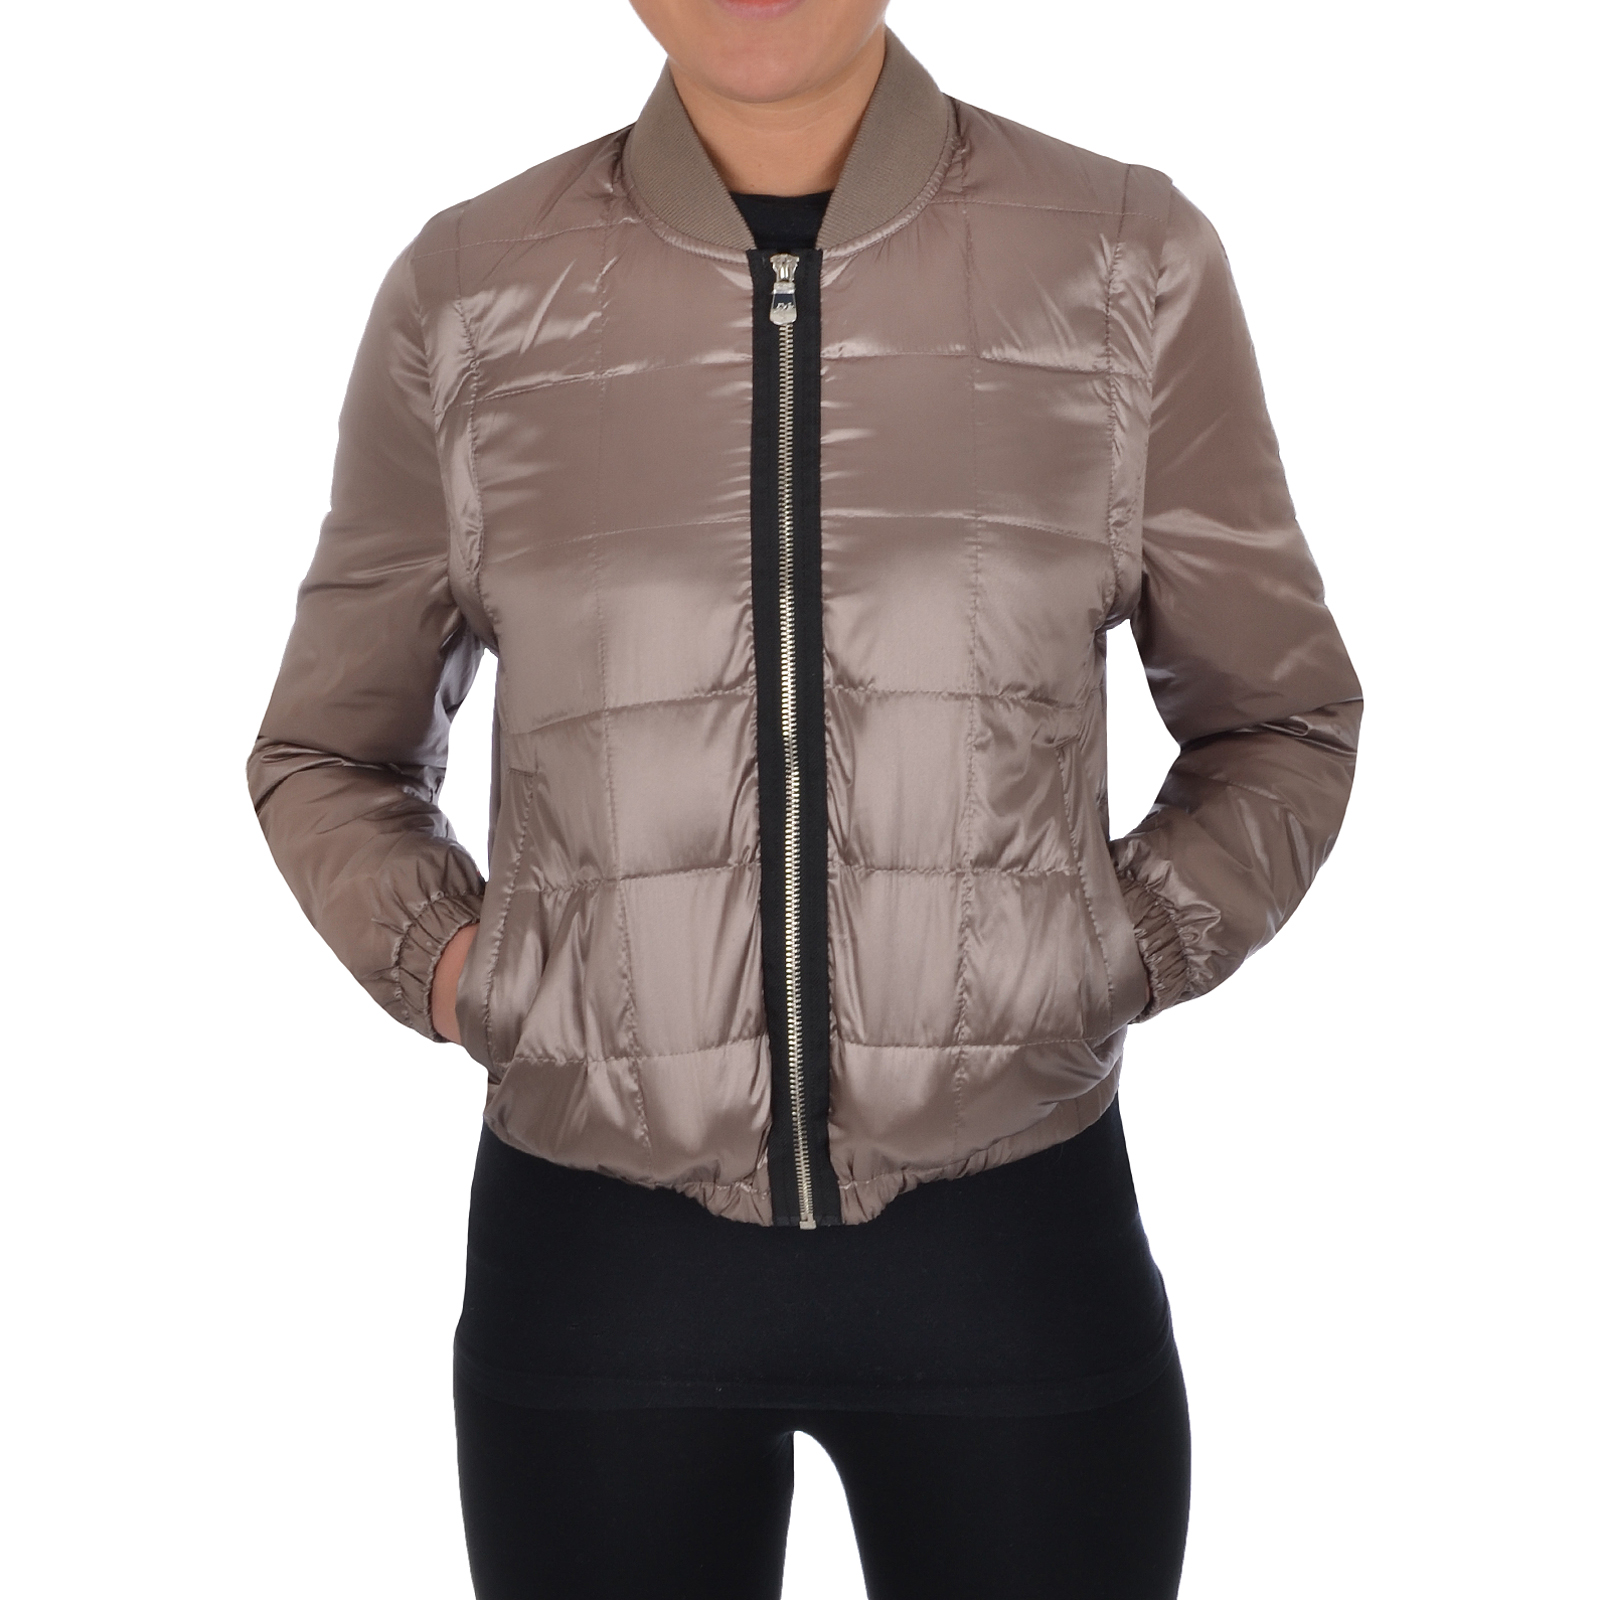 Puffa Womens Quilted Bomber Jacket Lightweight Padded Bodywarmer